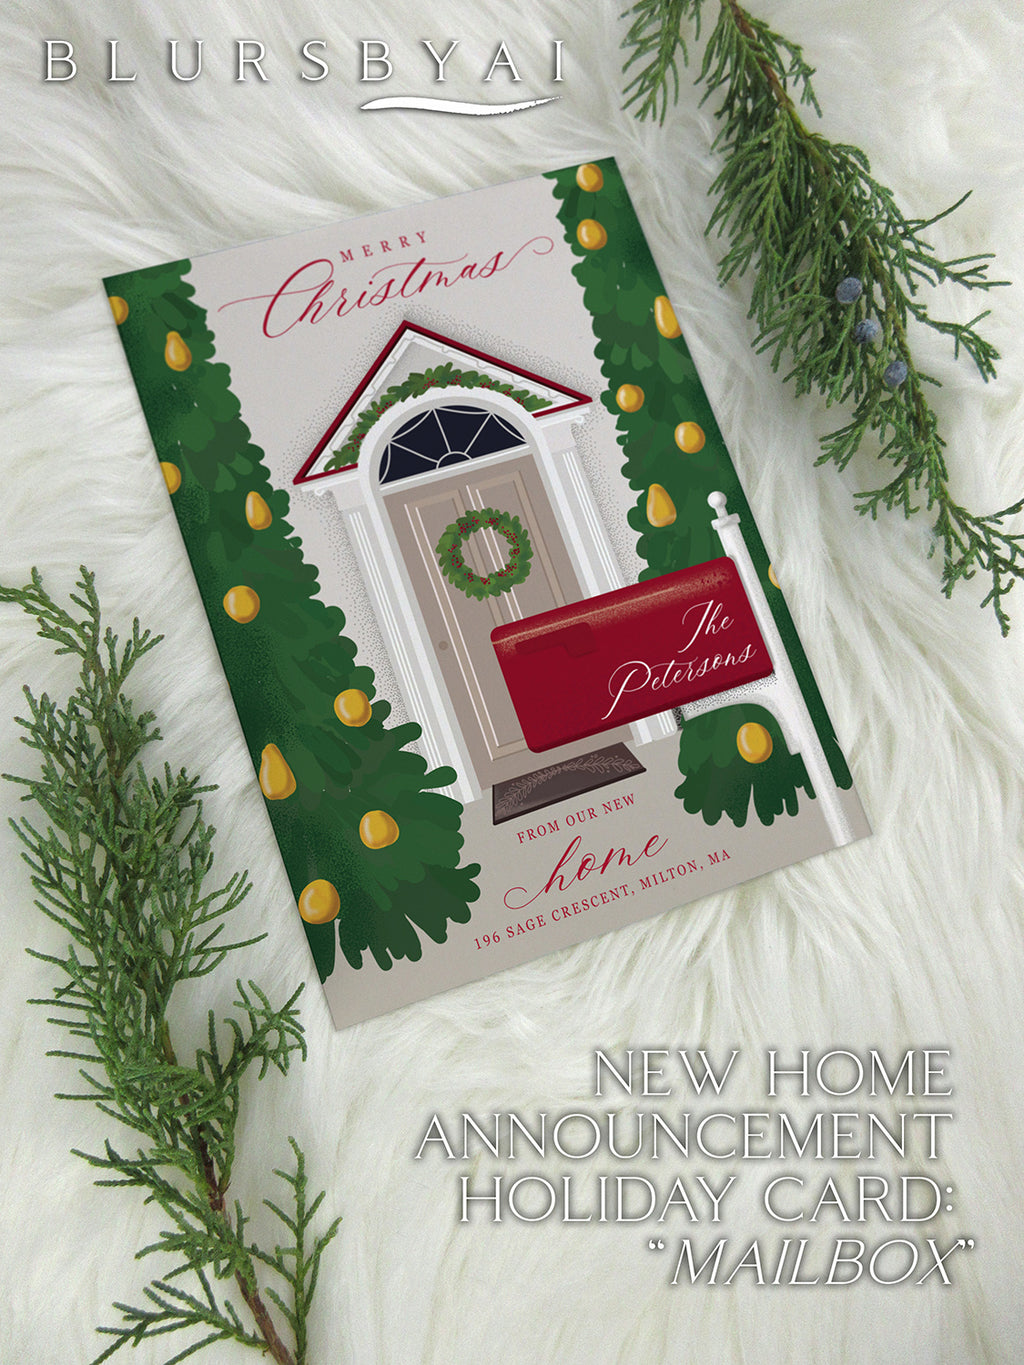 Mailbox - Custom printable Holiday illustrated card, new home announcement